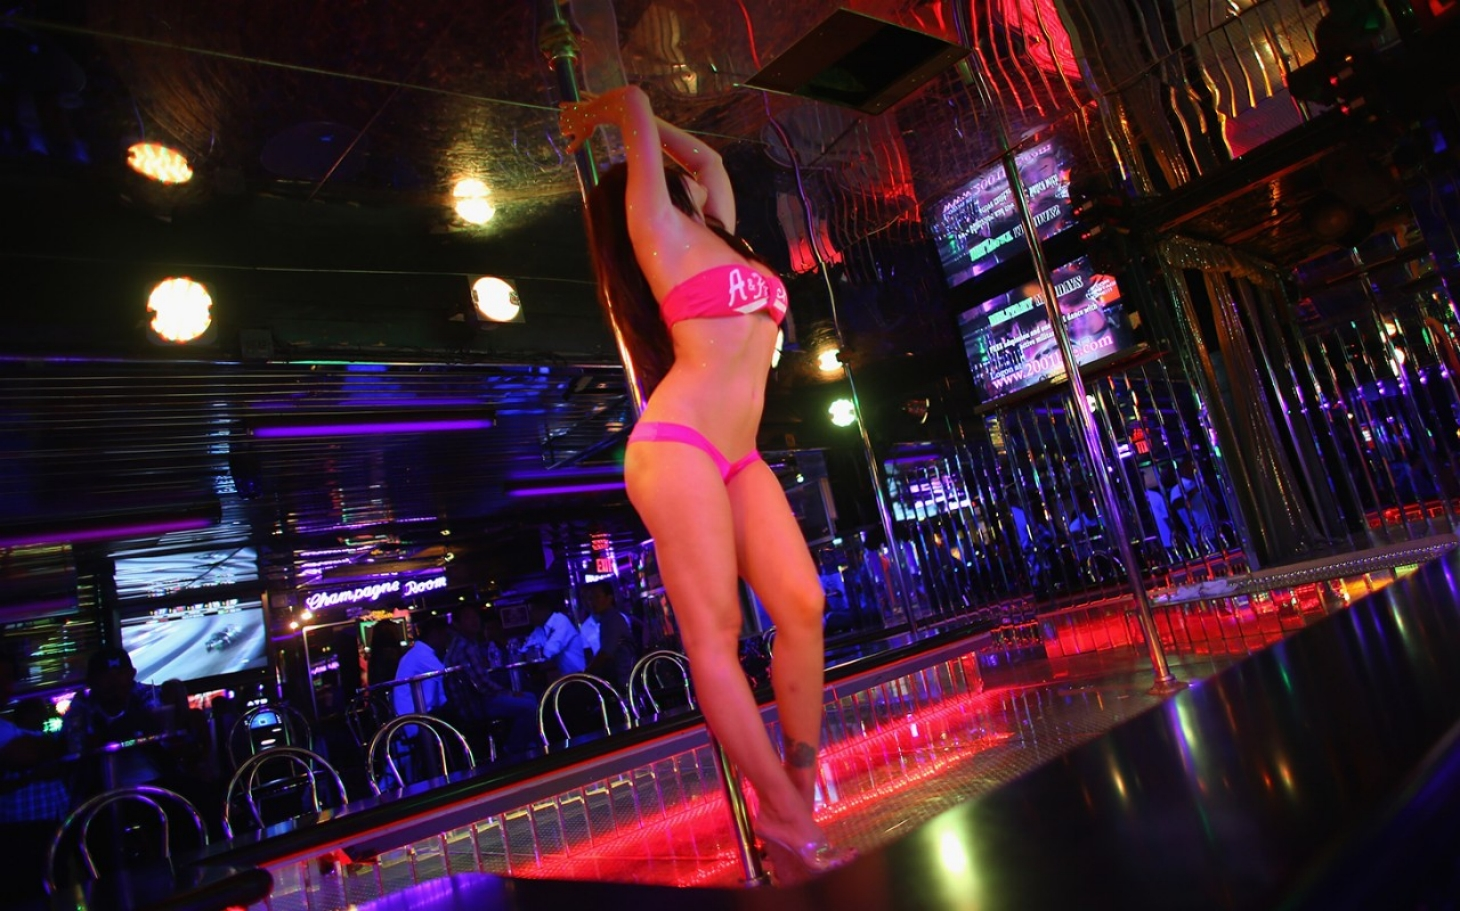 Club dancer stripper